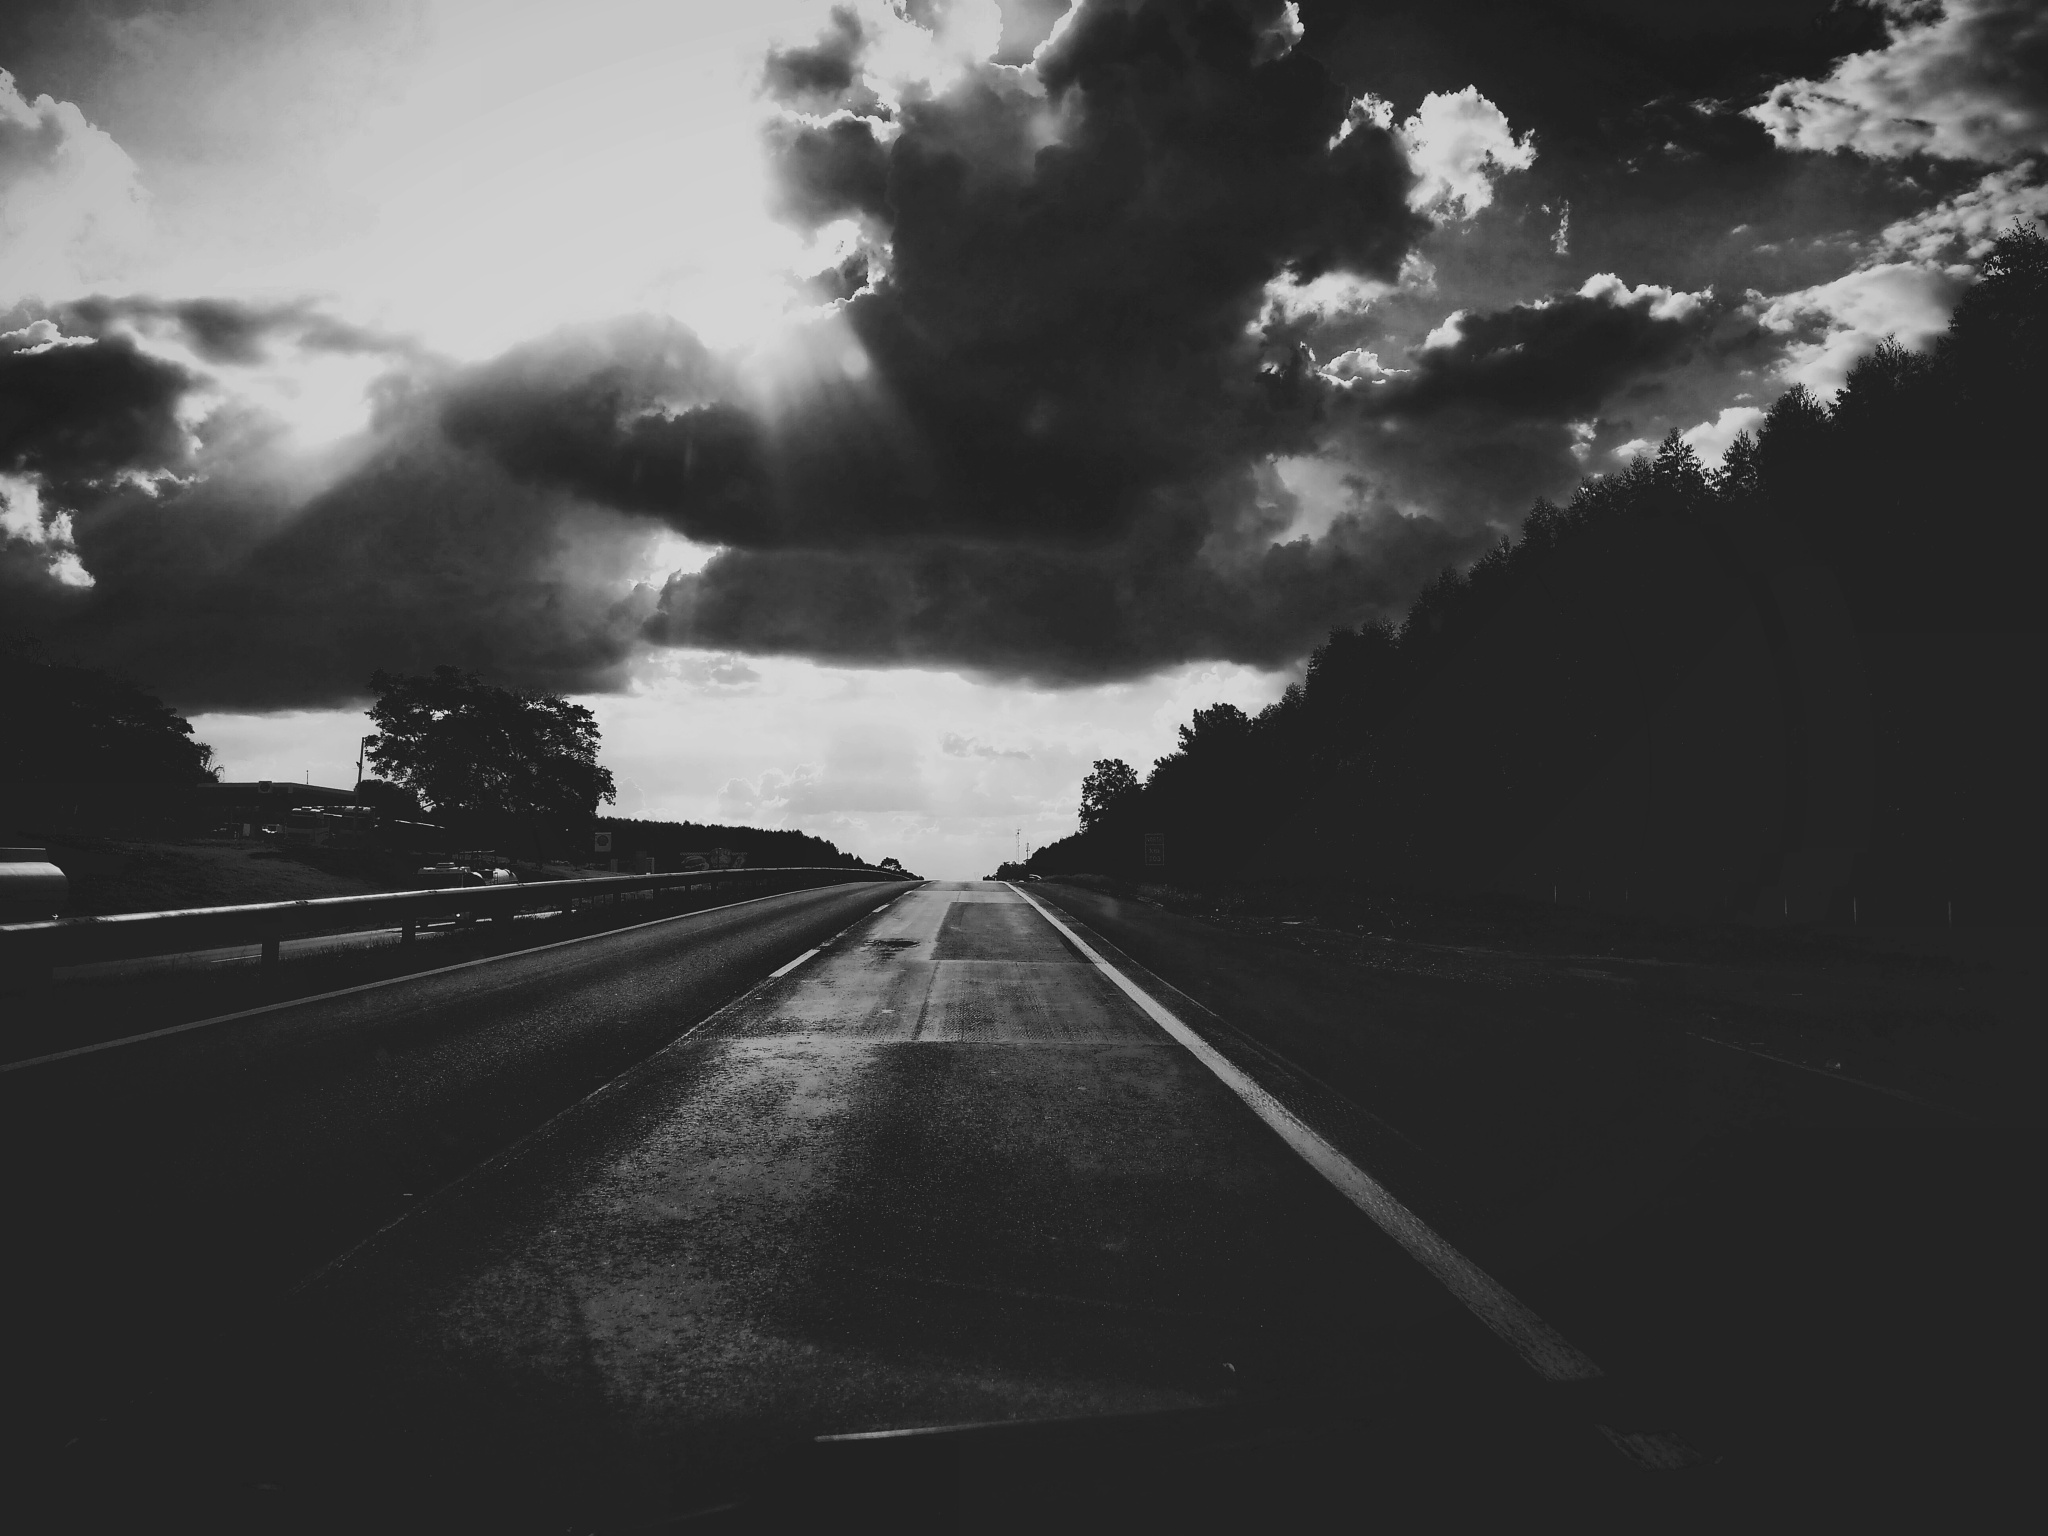 on the bw road ❤ by bianca vasconcellos